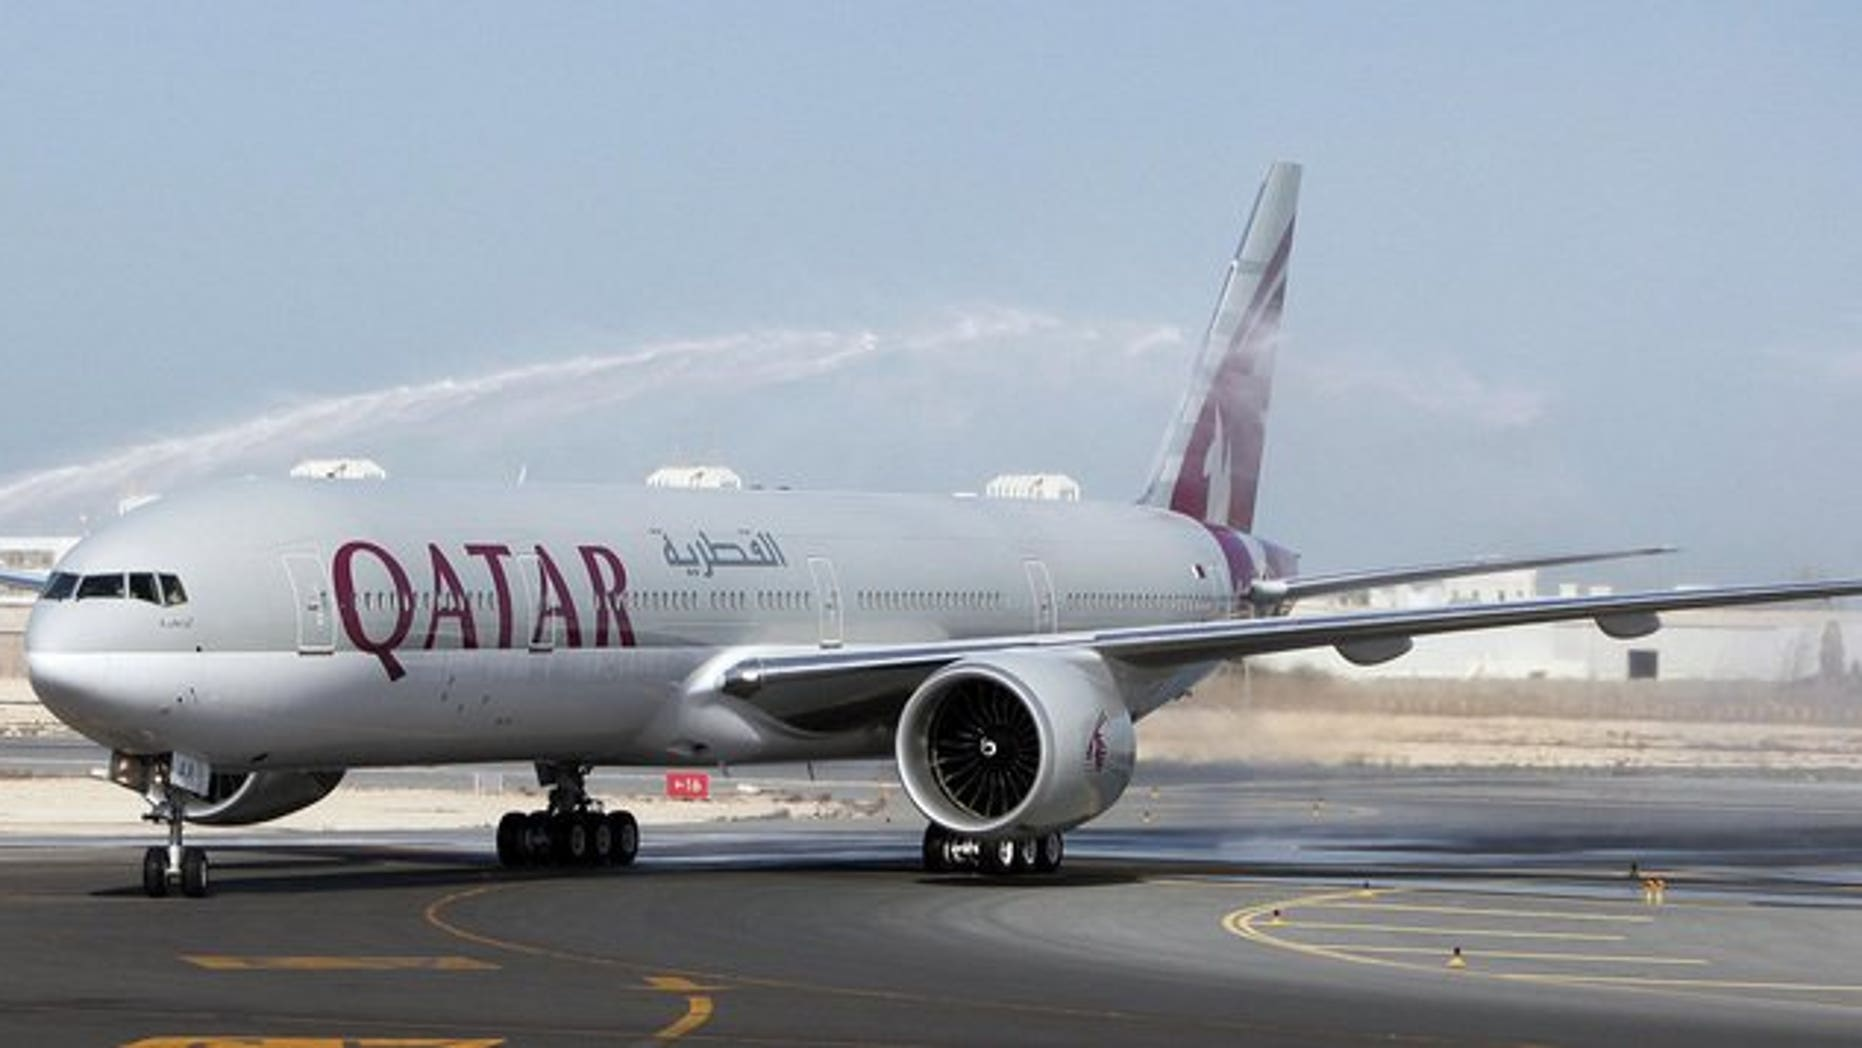 The first-ever Boeing aircraft 777 delivered to the state-owned Qatar Airways stands on the runway at Doha airport, 29 November 2007. A 787 Boeing Dreamliner belonging to Qatar Airways was grounded in Doha for several days after a problem with an electrical panel, an industry source said on Friday.